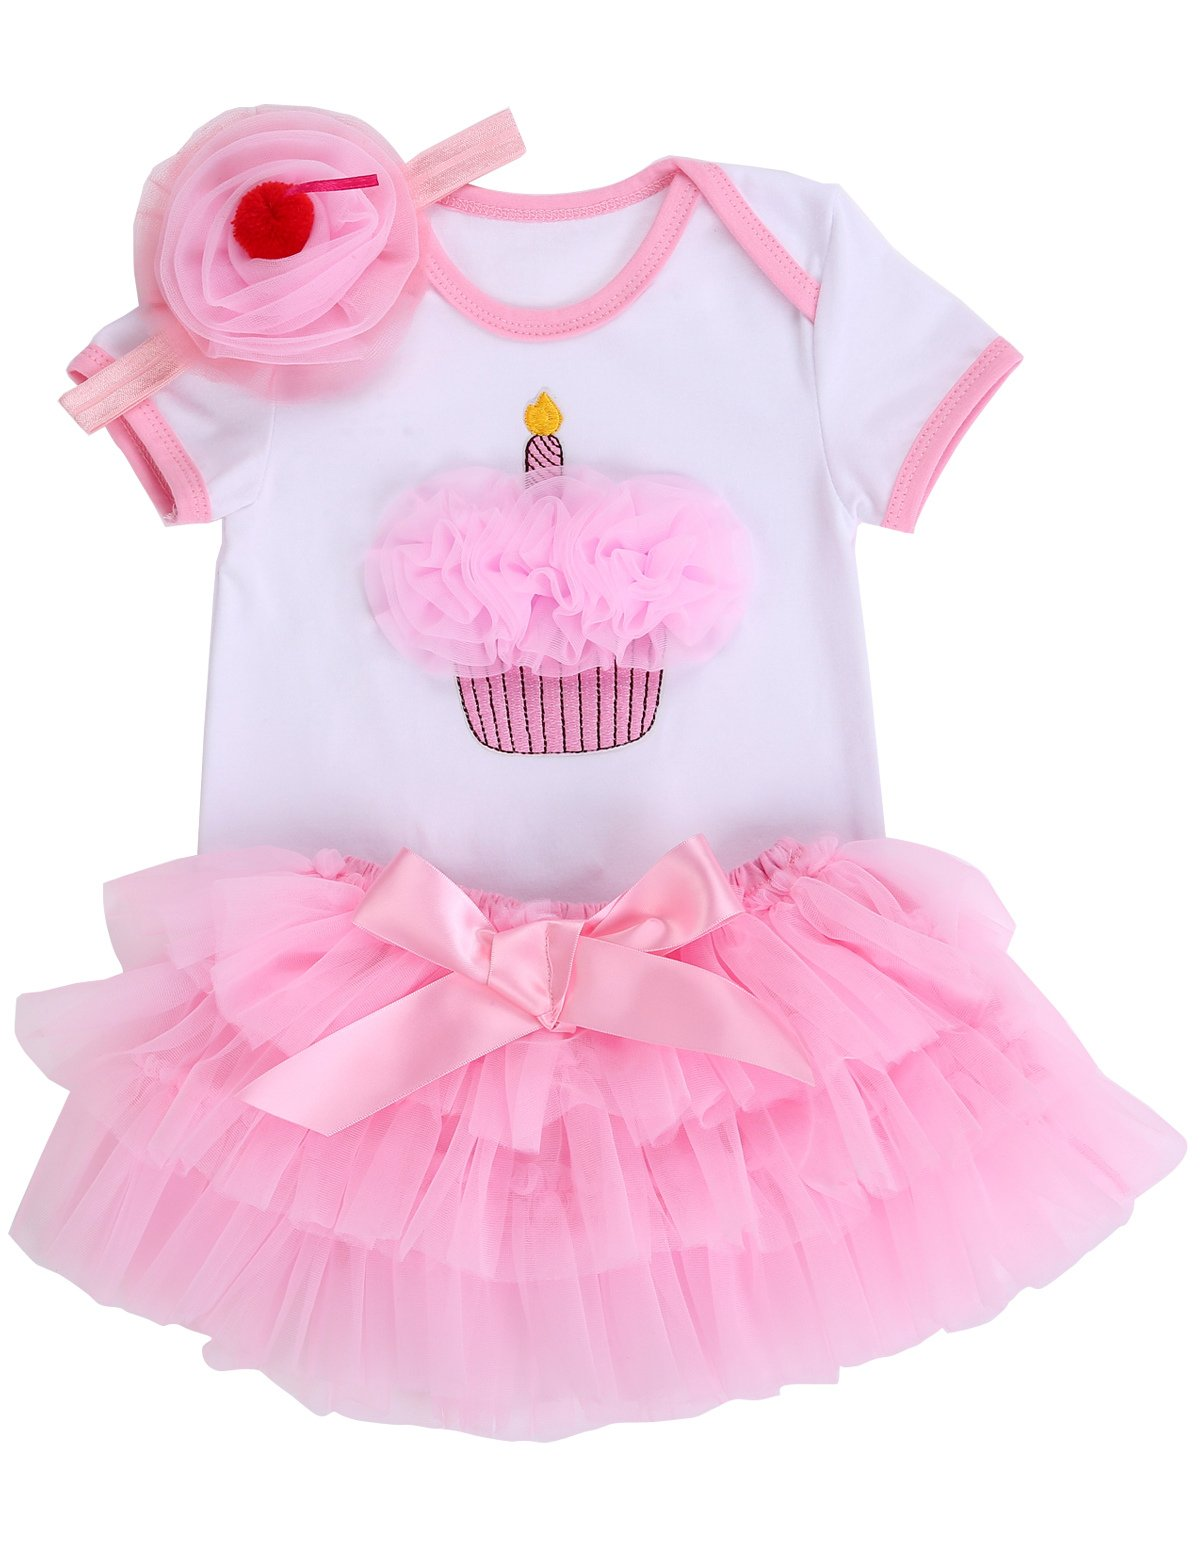 Smilsheep Bridesmaid Prom Christmas Evening Formal Girls Dress Baby Girl Clothes Pink Cake 10-18Months/31-35''/24.5-30 lb